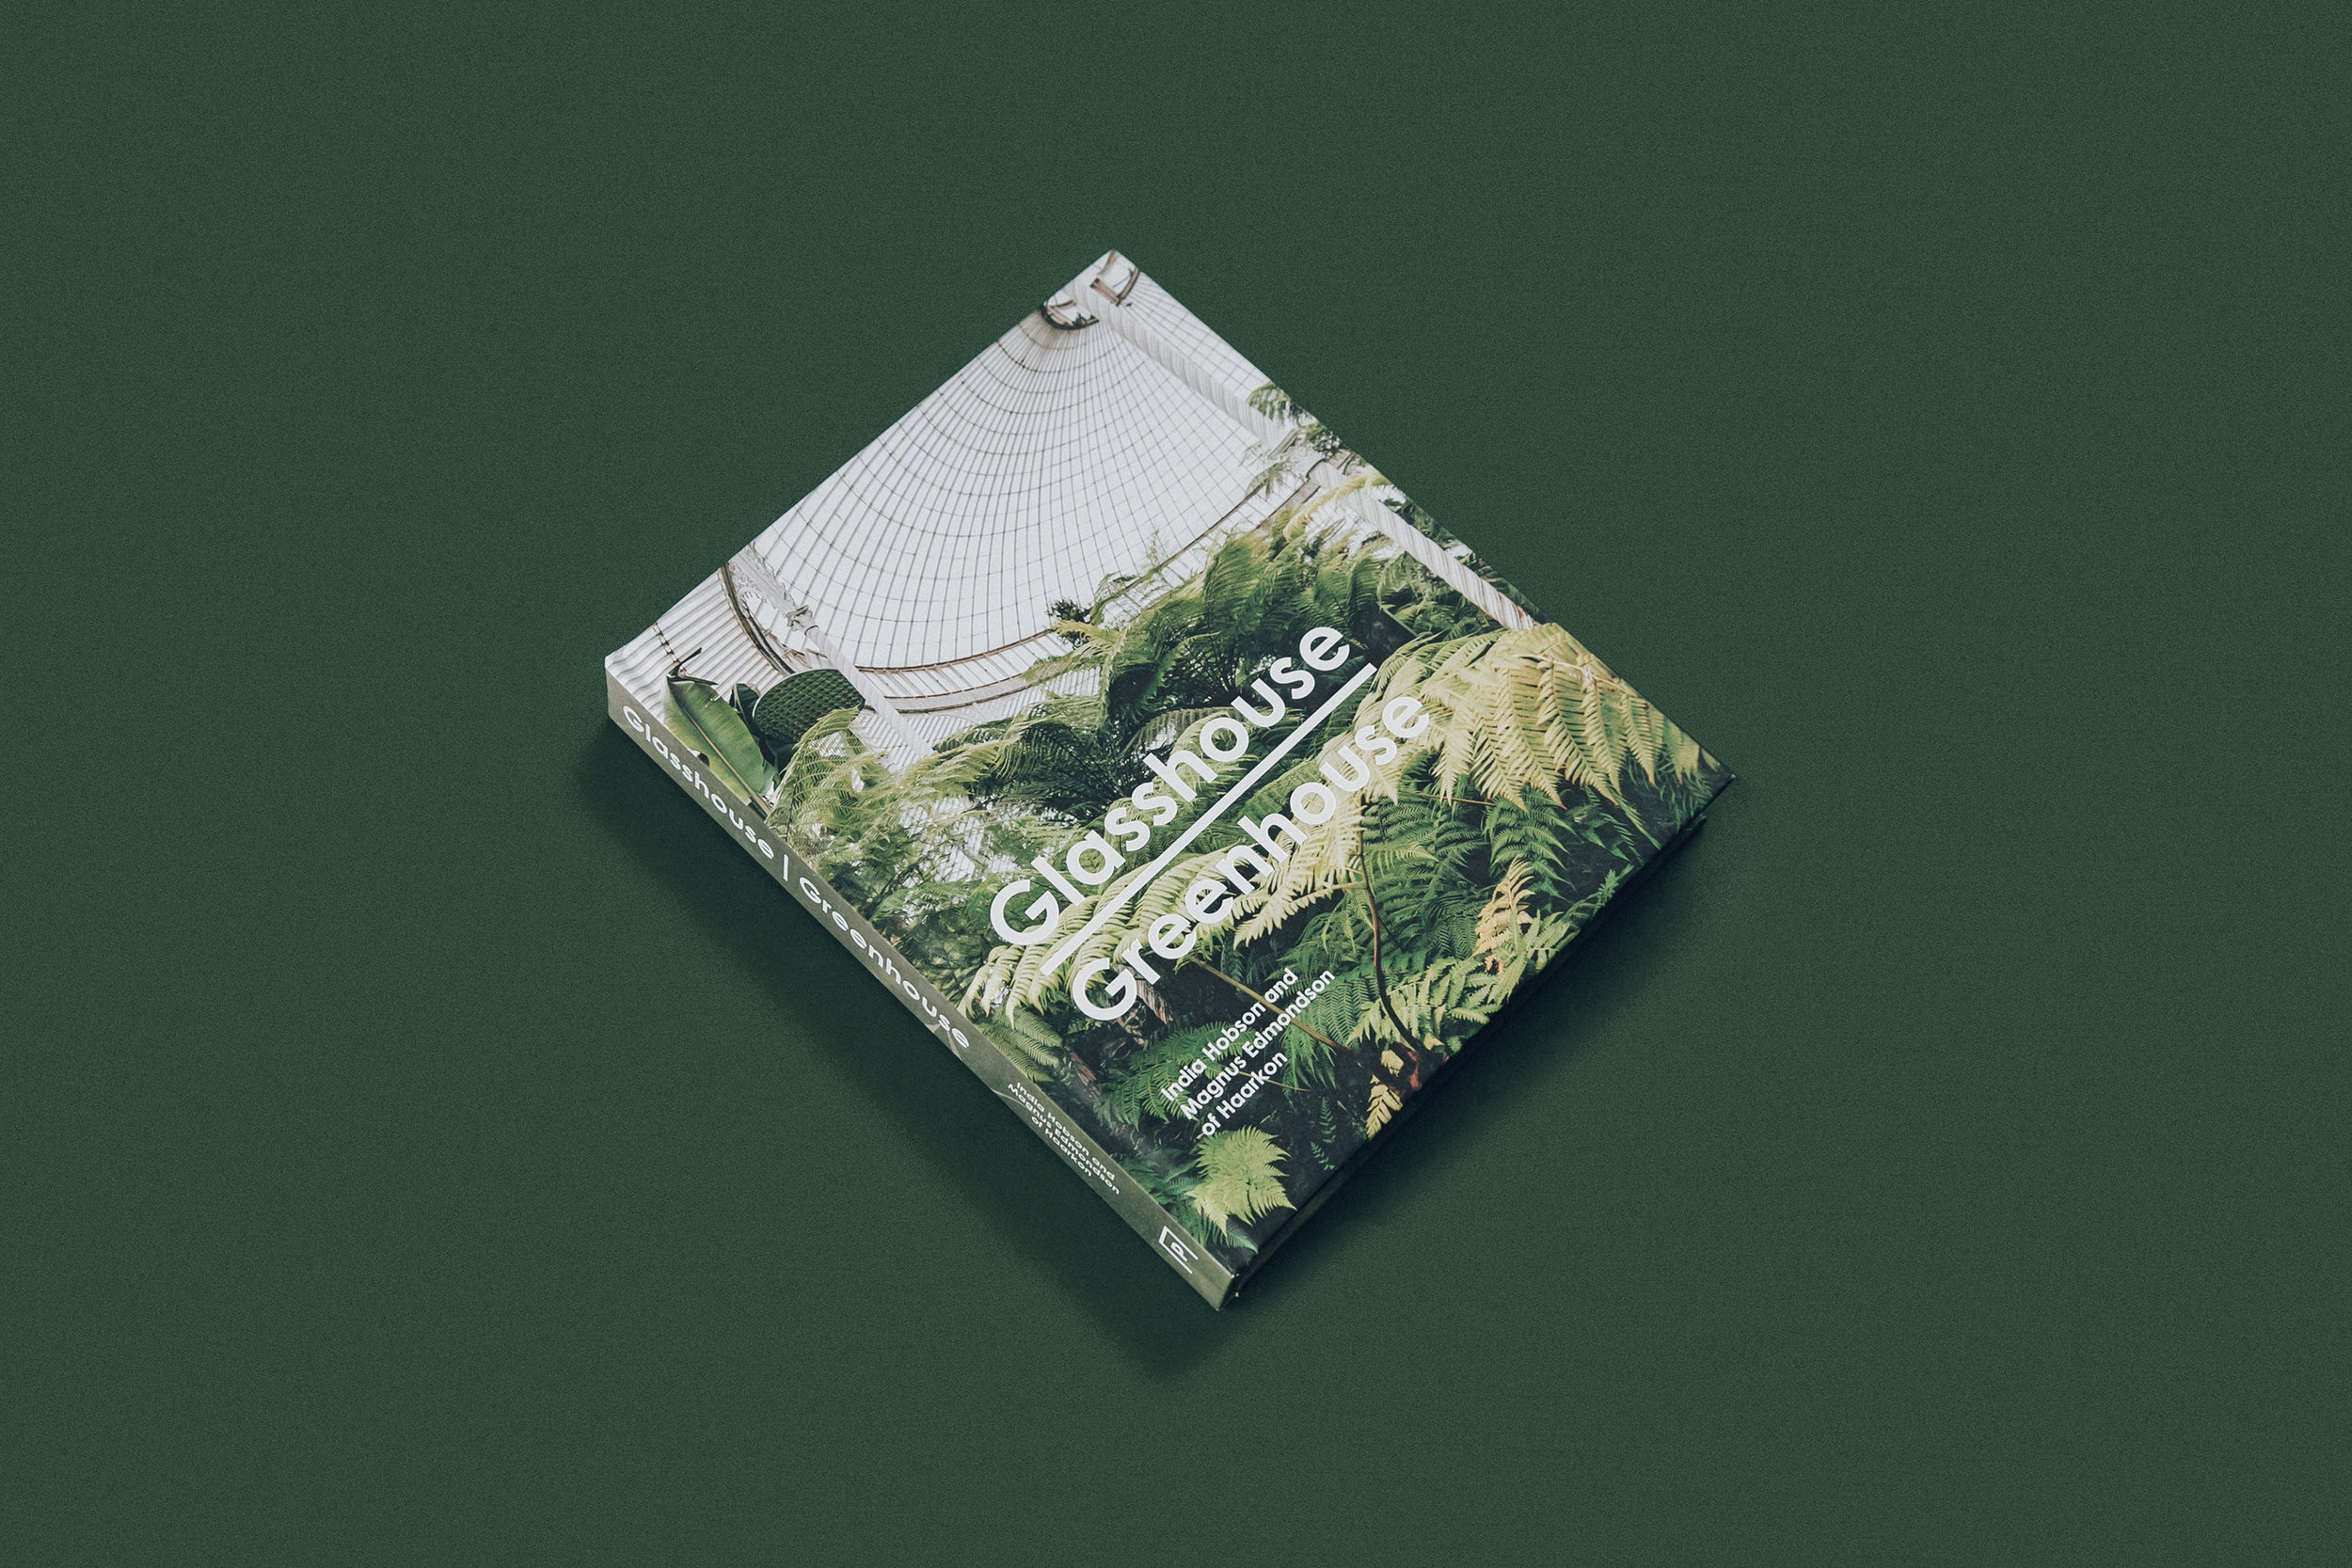 Glasshouse Greenhouse book by Haarkon.